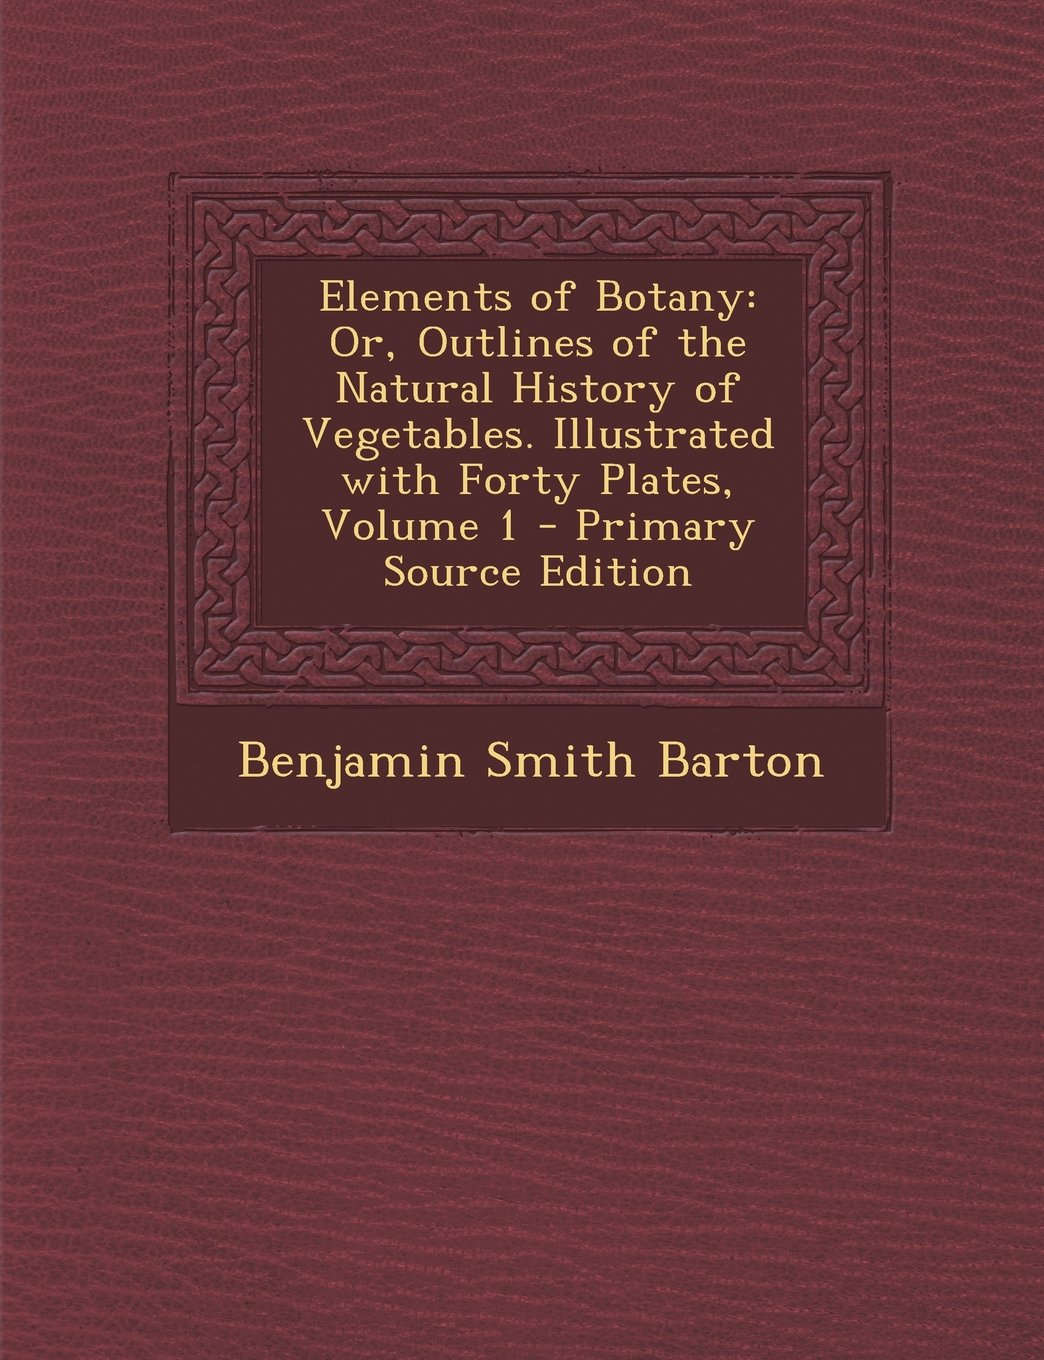 Download Elements of Botany: Or, Outlines of the Natural History of Vegetables. Illustrated with Forty Plates, Volume 1 pdf